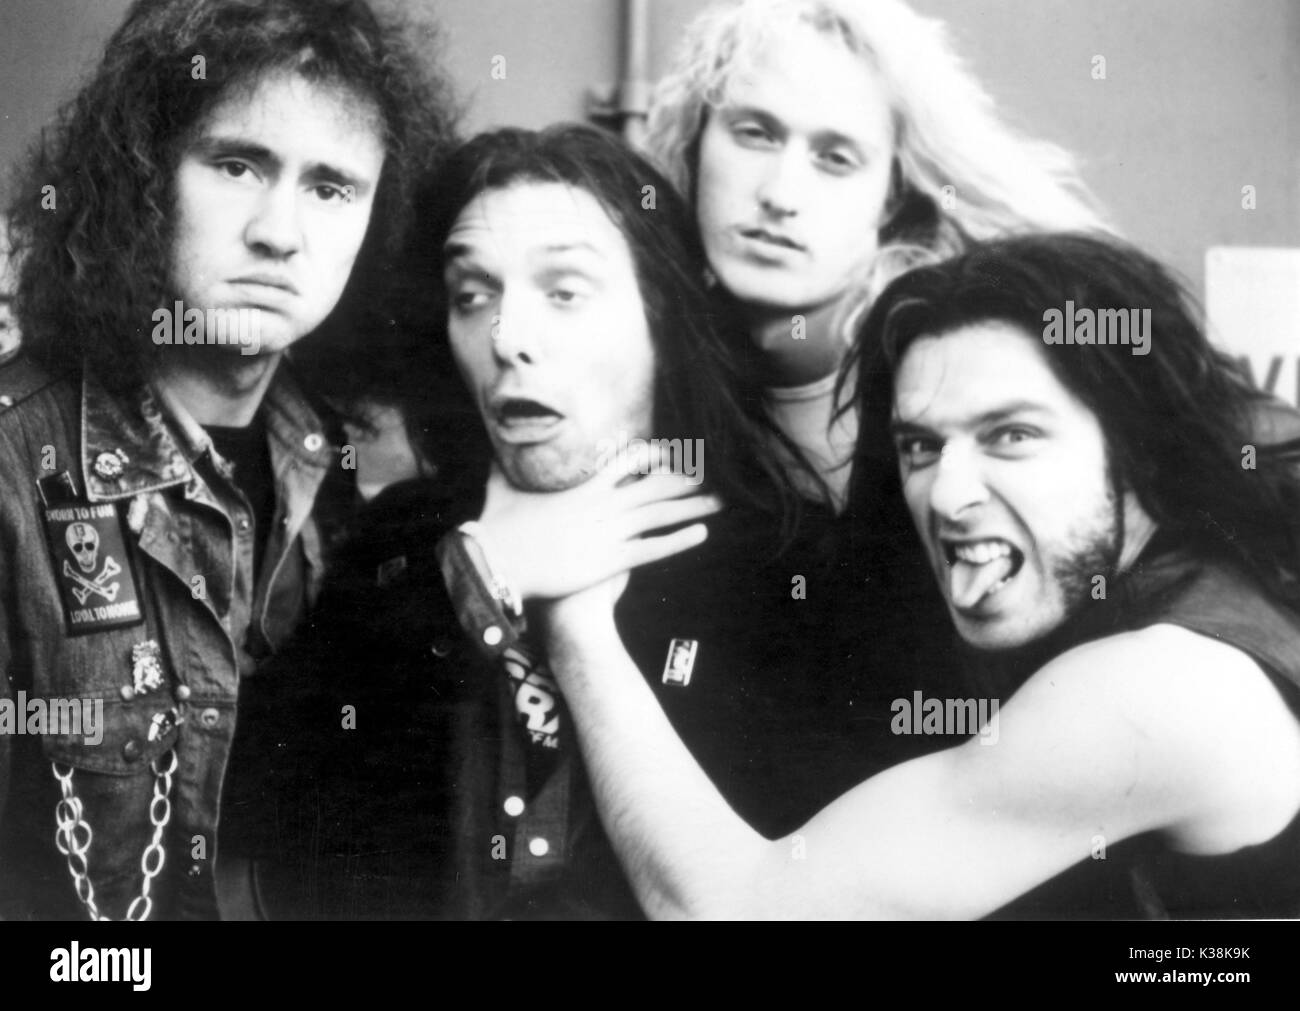 COMIC STRIP PRESENTS...BAD NEWS TOUR NIGEL PLANER, RIK MAYALL, ADRIAN EDMONSON AND ? - Stock Image